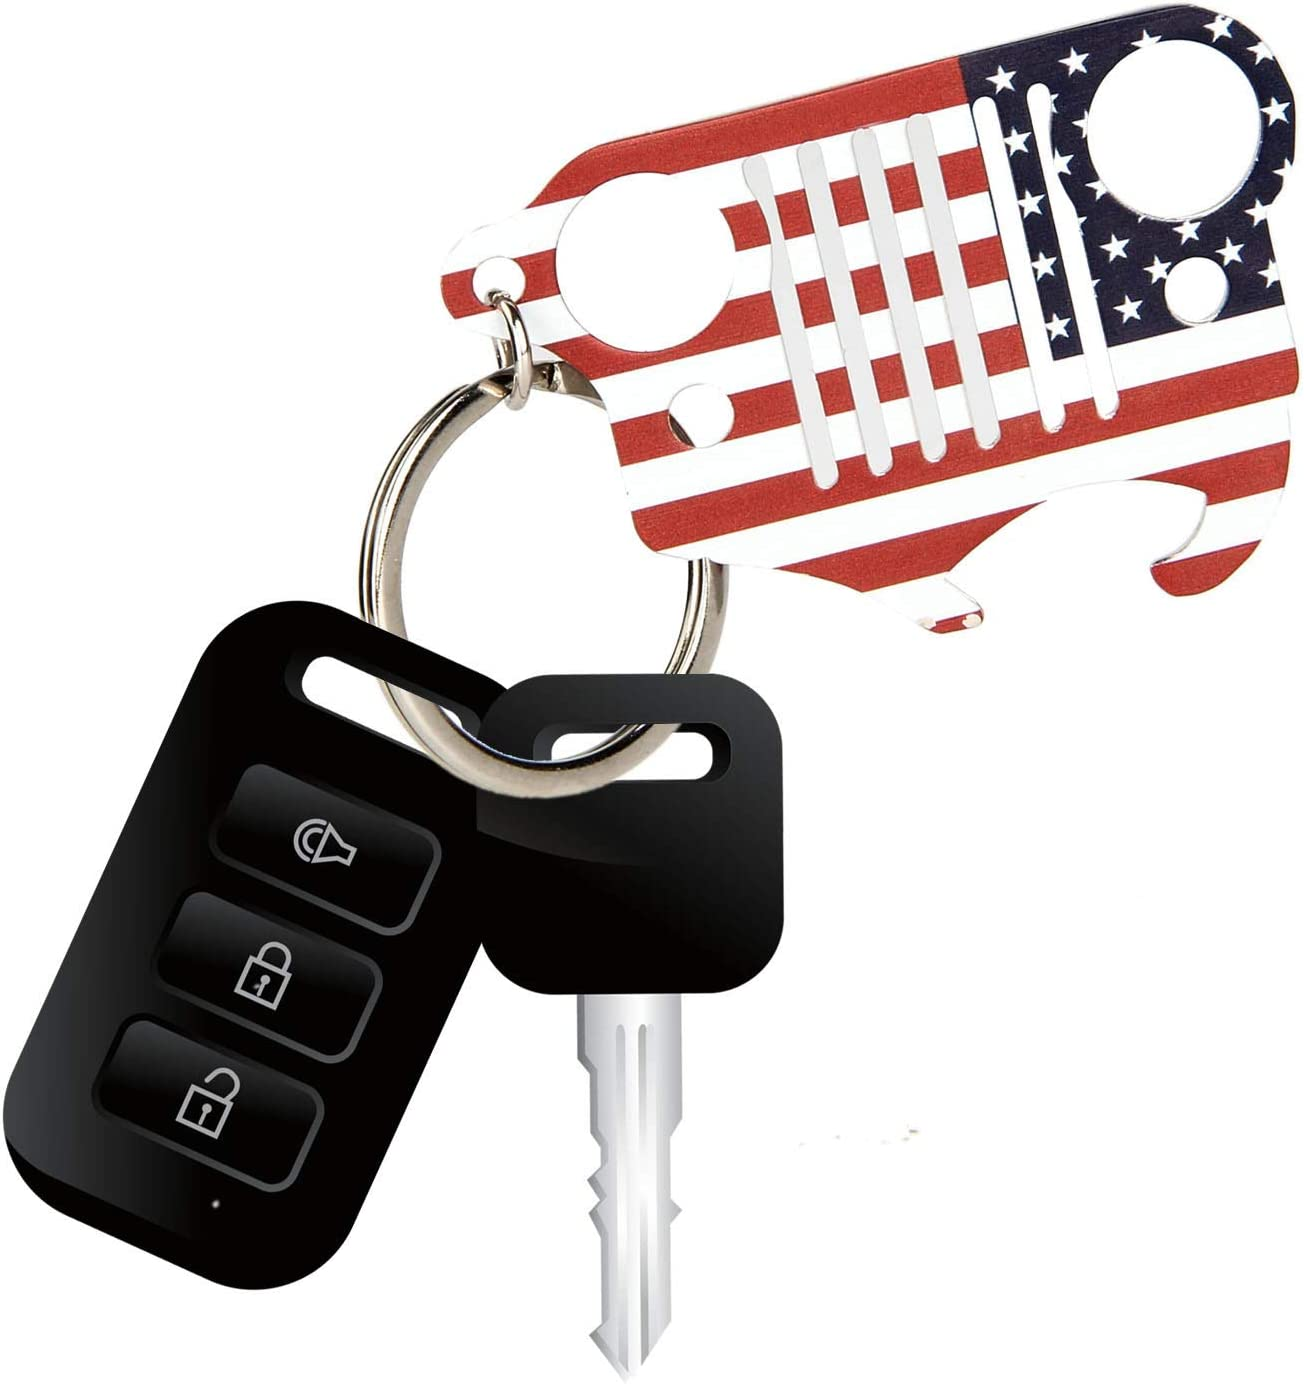 EVAPLUS Car Key Ring with Bottle Opener for Jeep Wrangler Accessories American Flag